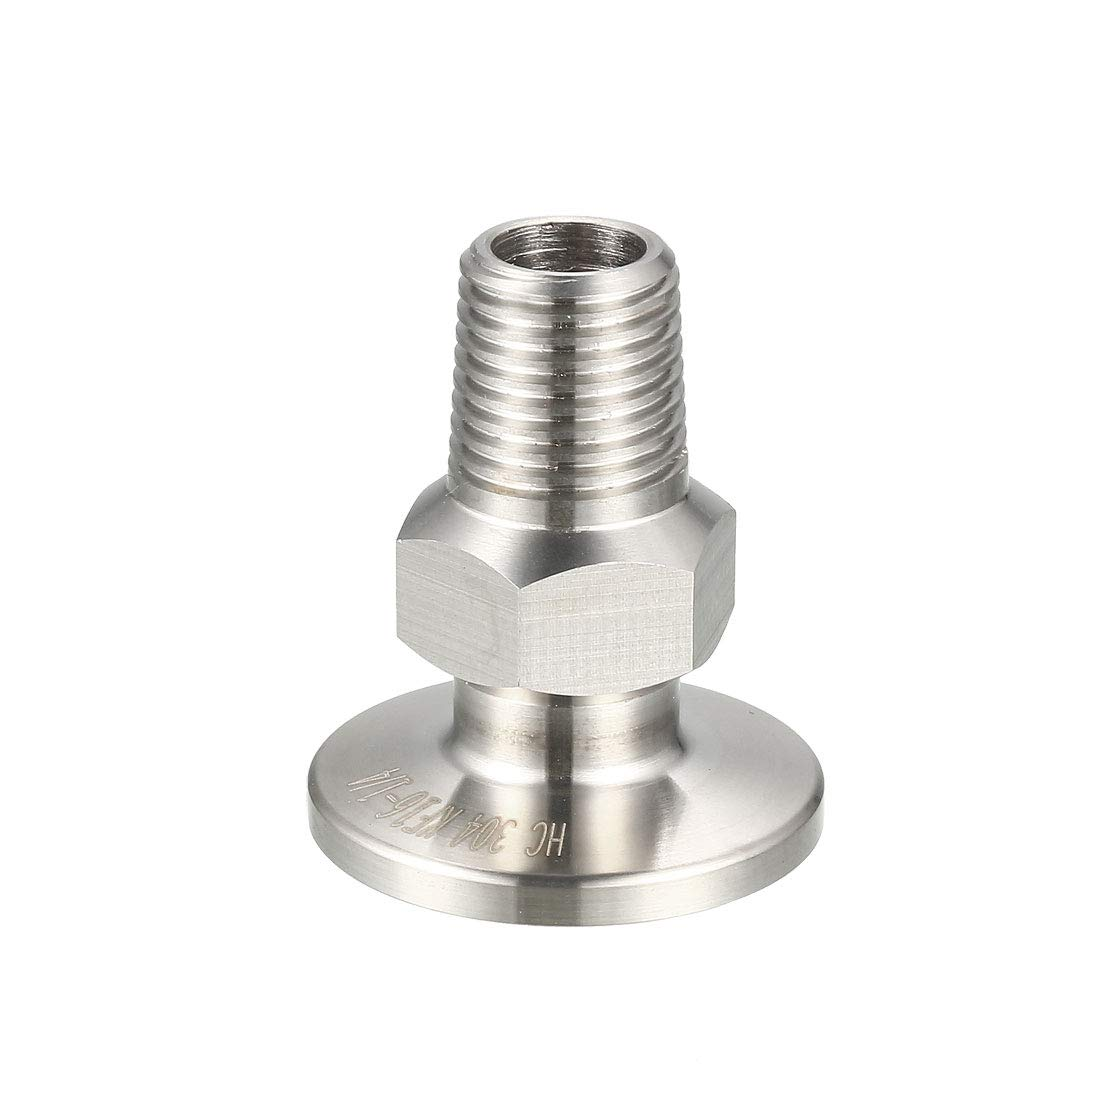 uxcell Sanitary Pipe Fitting KF16 Male Threaded 1/4 PT to Tri Clamp OD 30mm Ferrule